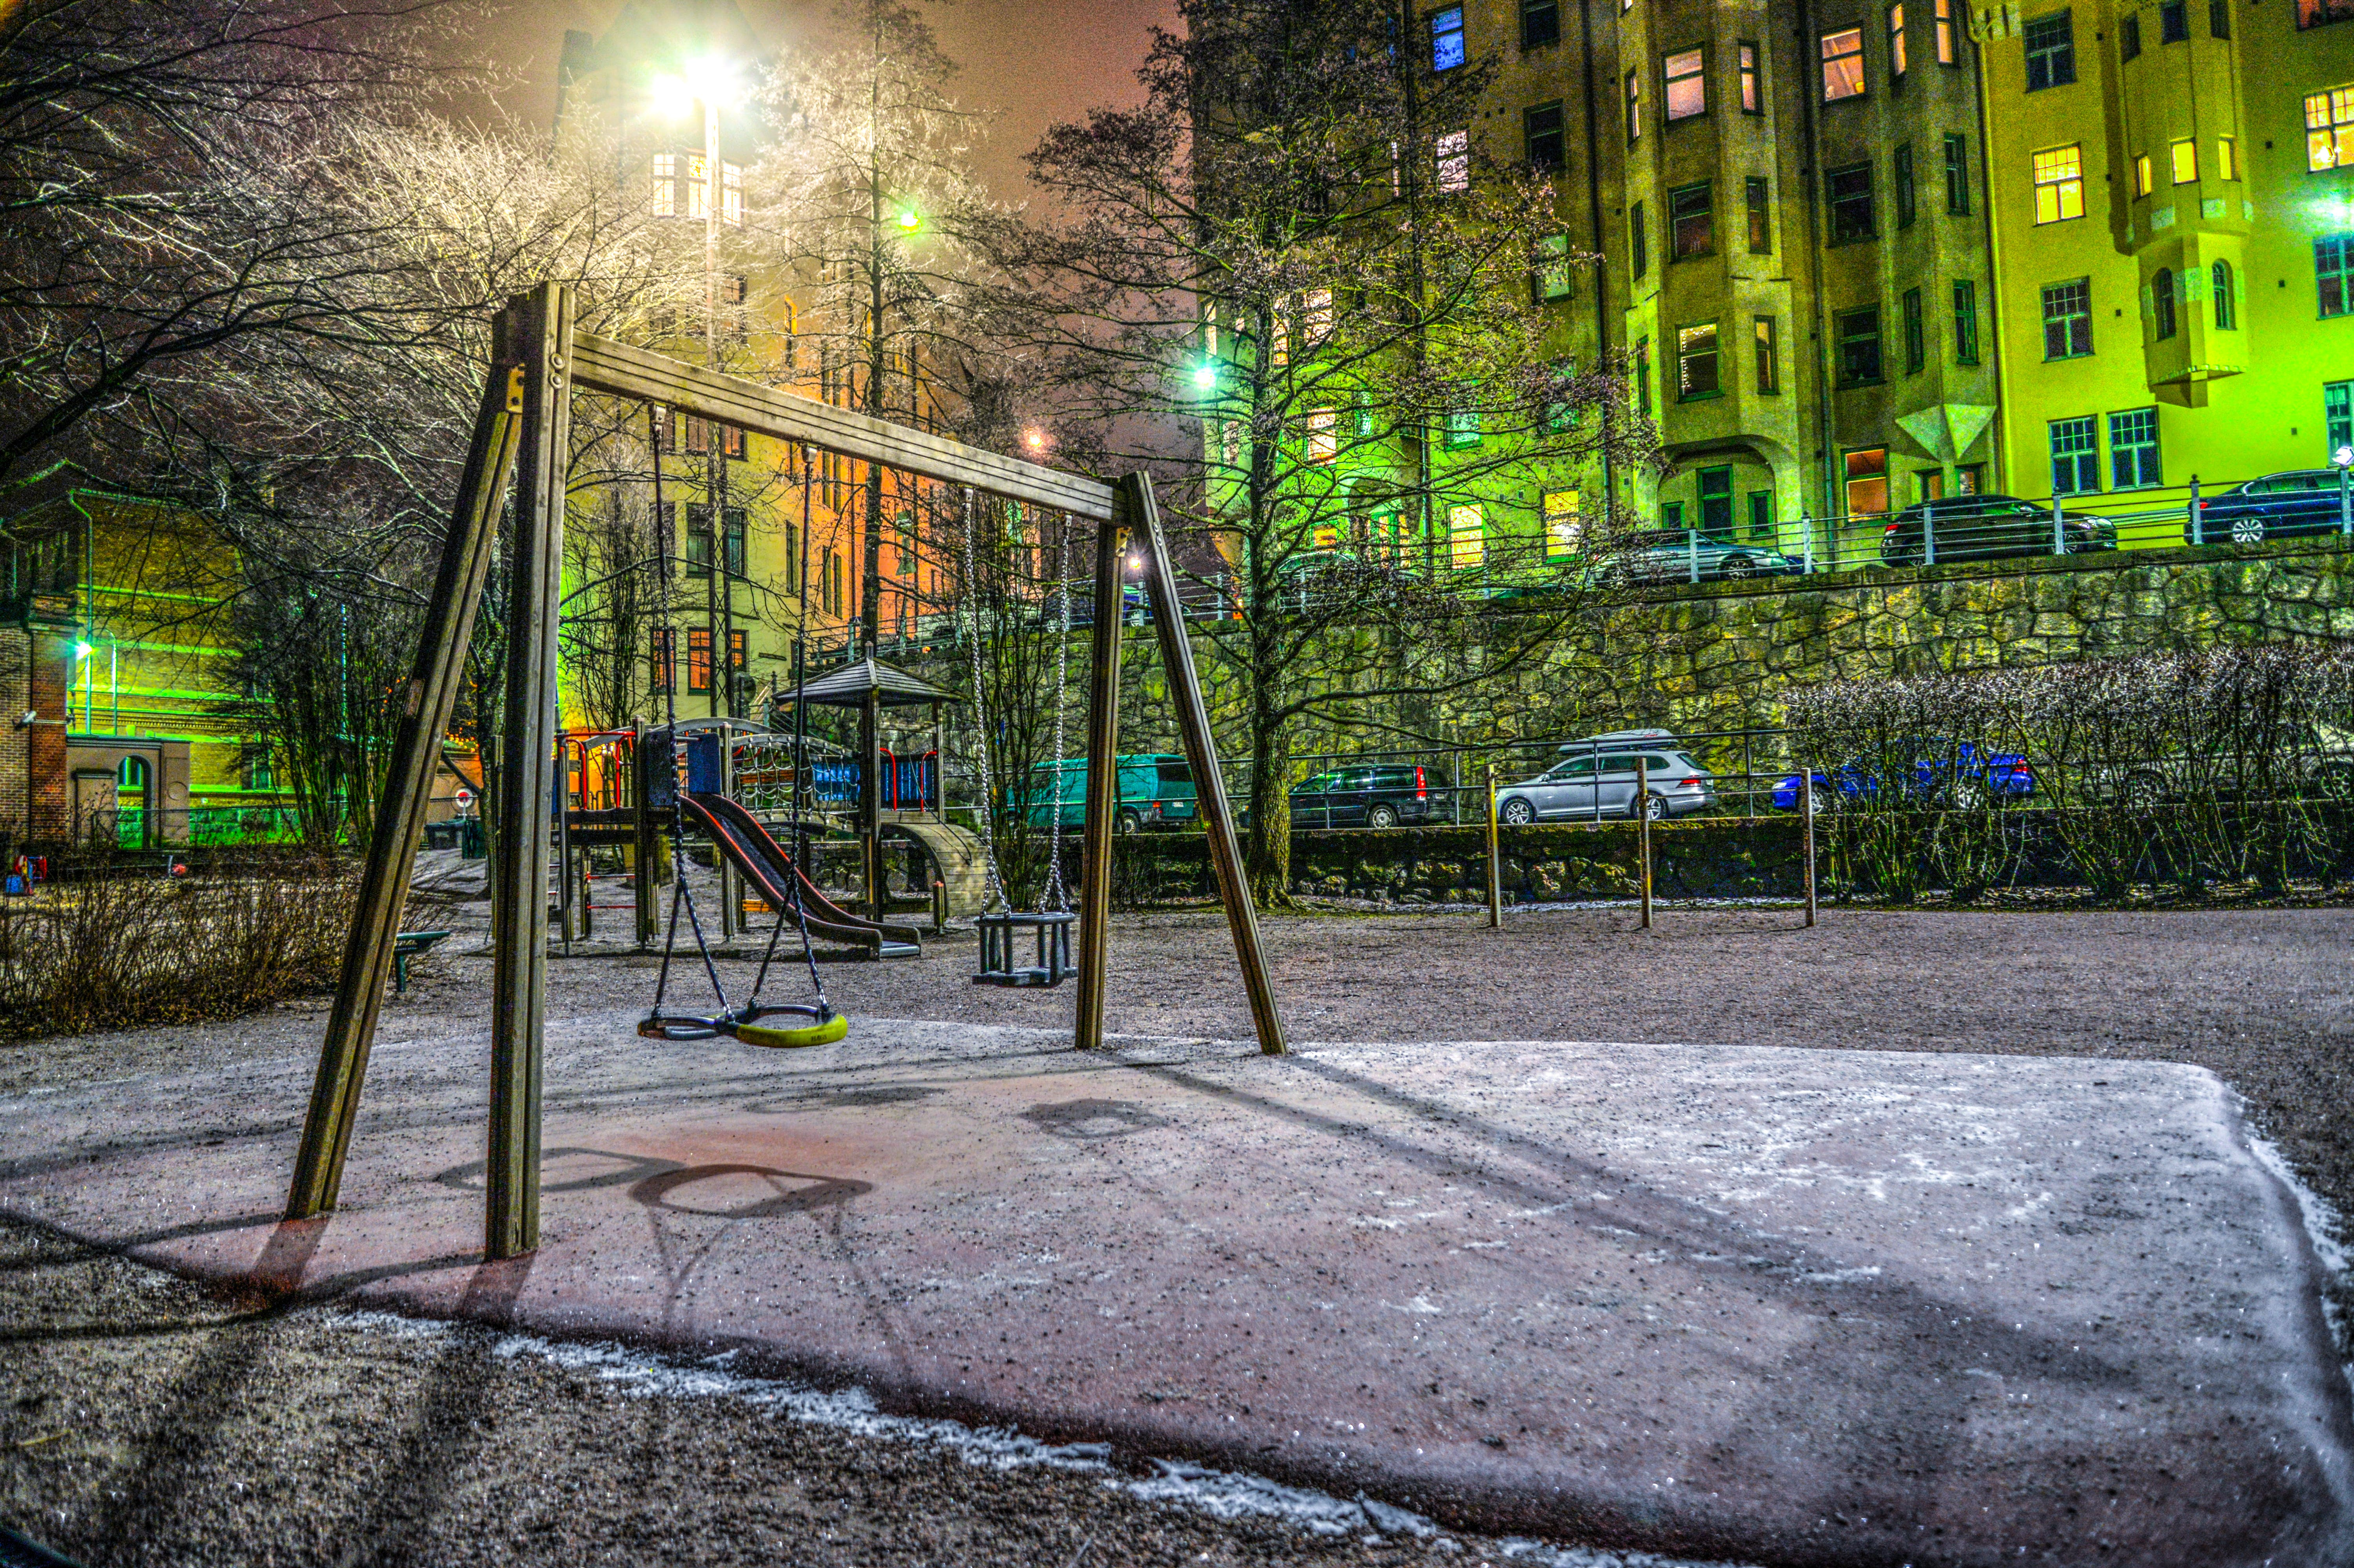 Playground Surrounded With Buildings And Cars